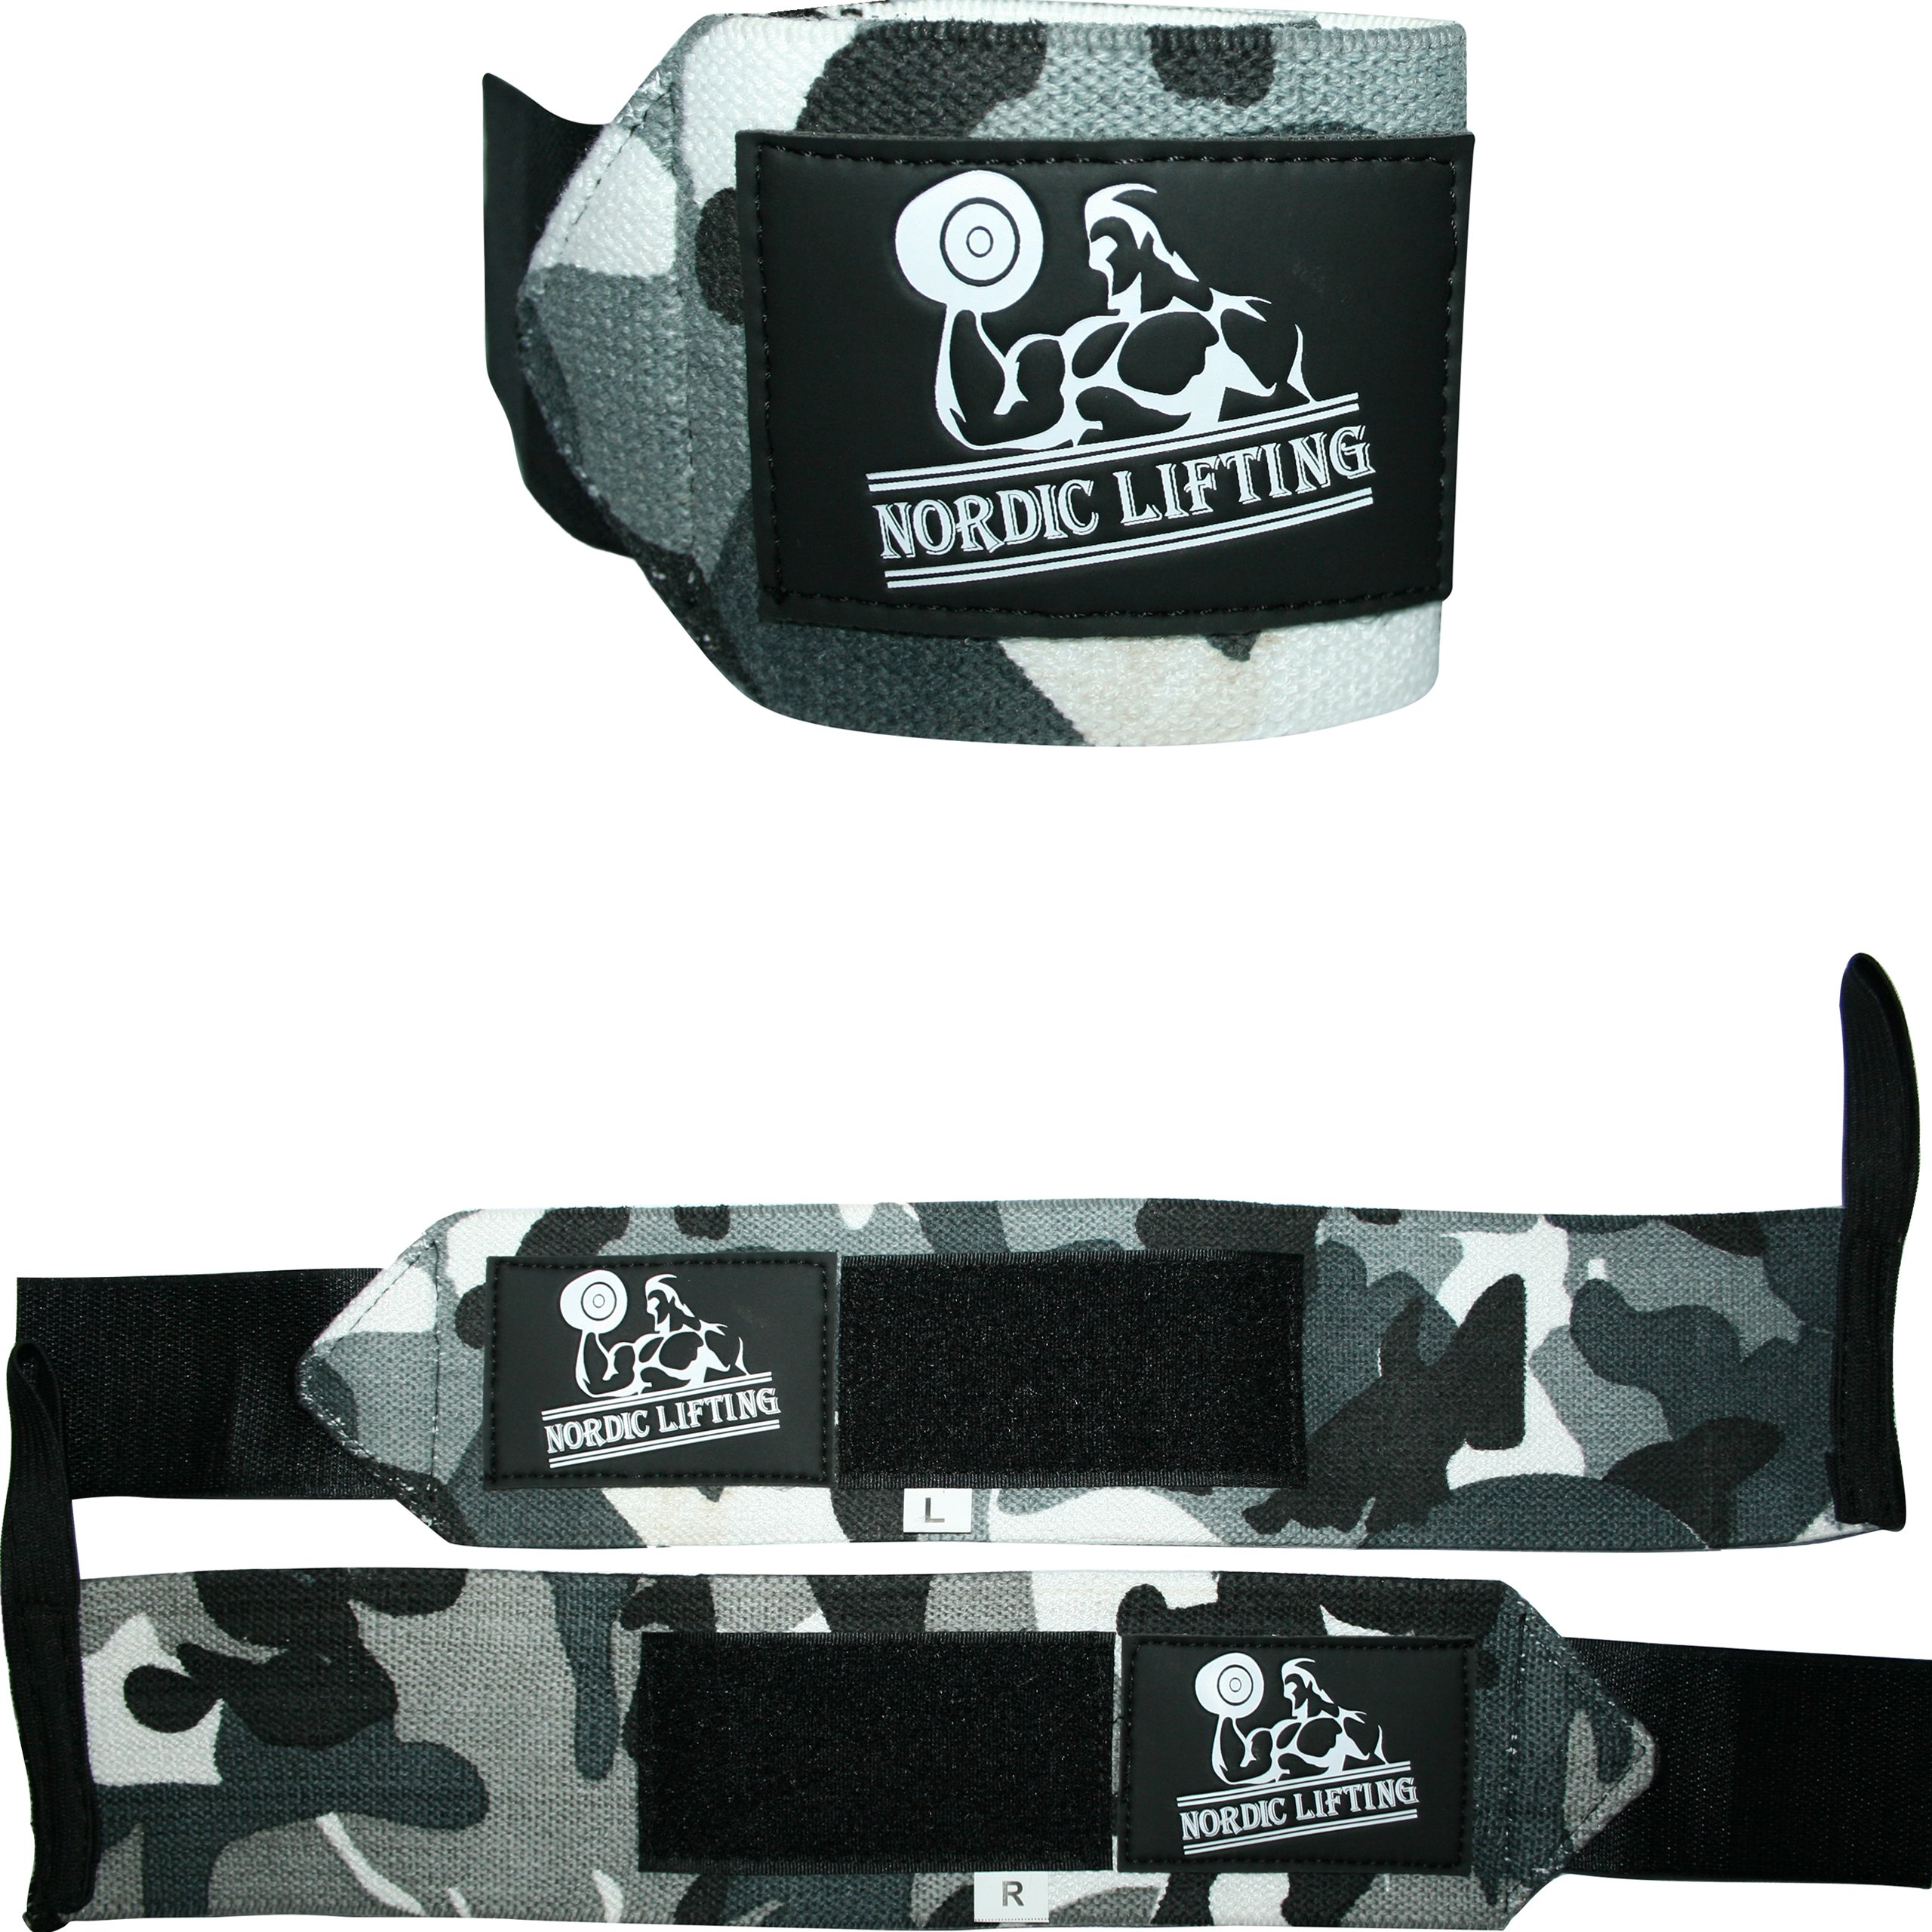 Wrist Wraps (1 Pair/2 Wraps)for Weightlifting/Cross Training/Powerlifting/Bodybuilding-Women & Men-Premium Quality Equipment & Accessories Avoid Injury During Weight Lifting-(CamoGrey)-1 Year Warranty